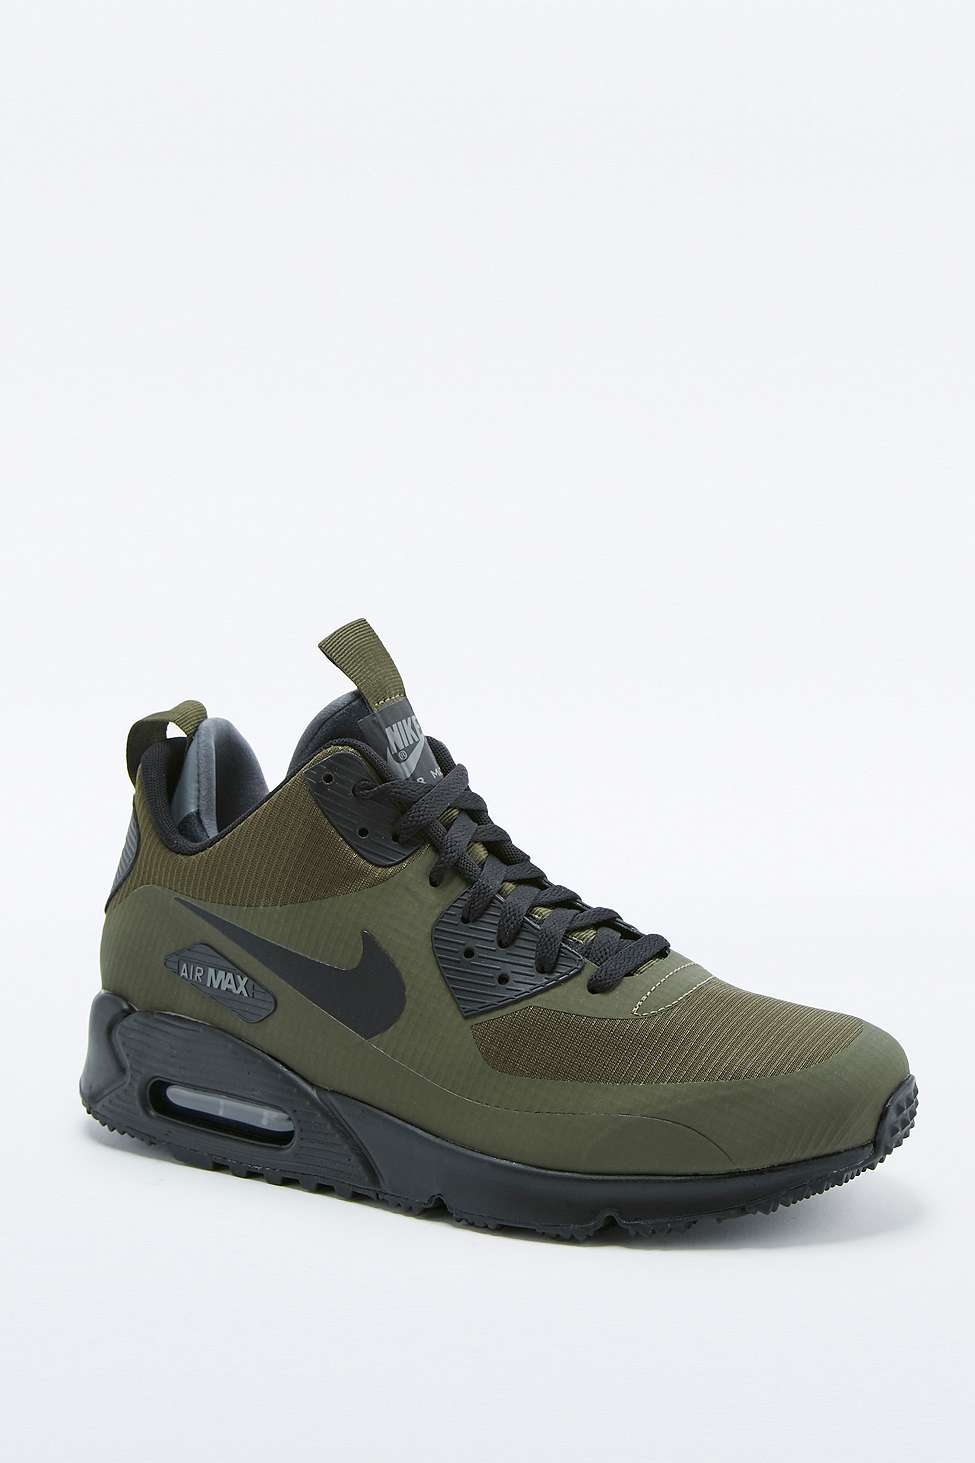 best sneakers 9b40a ad0fd Nike Air Max 90 Mid Winter Khaki Trainers. £110